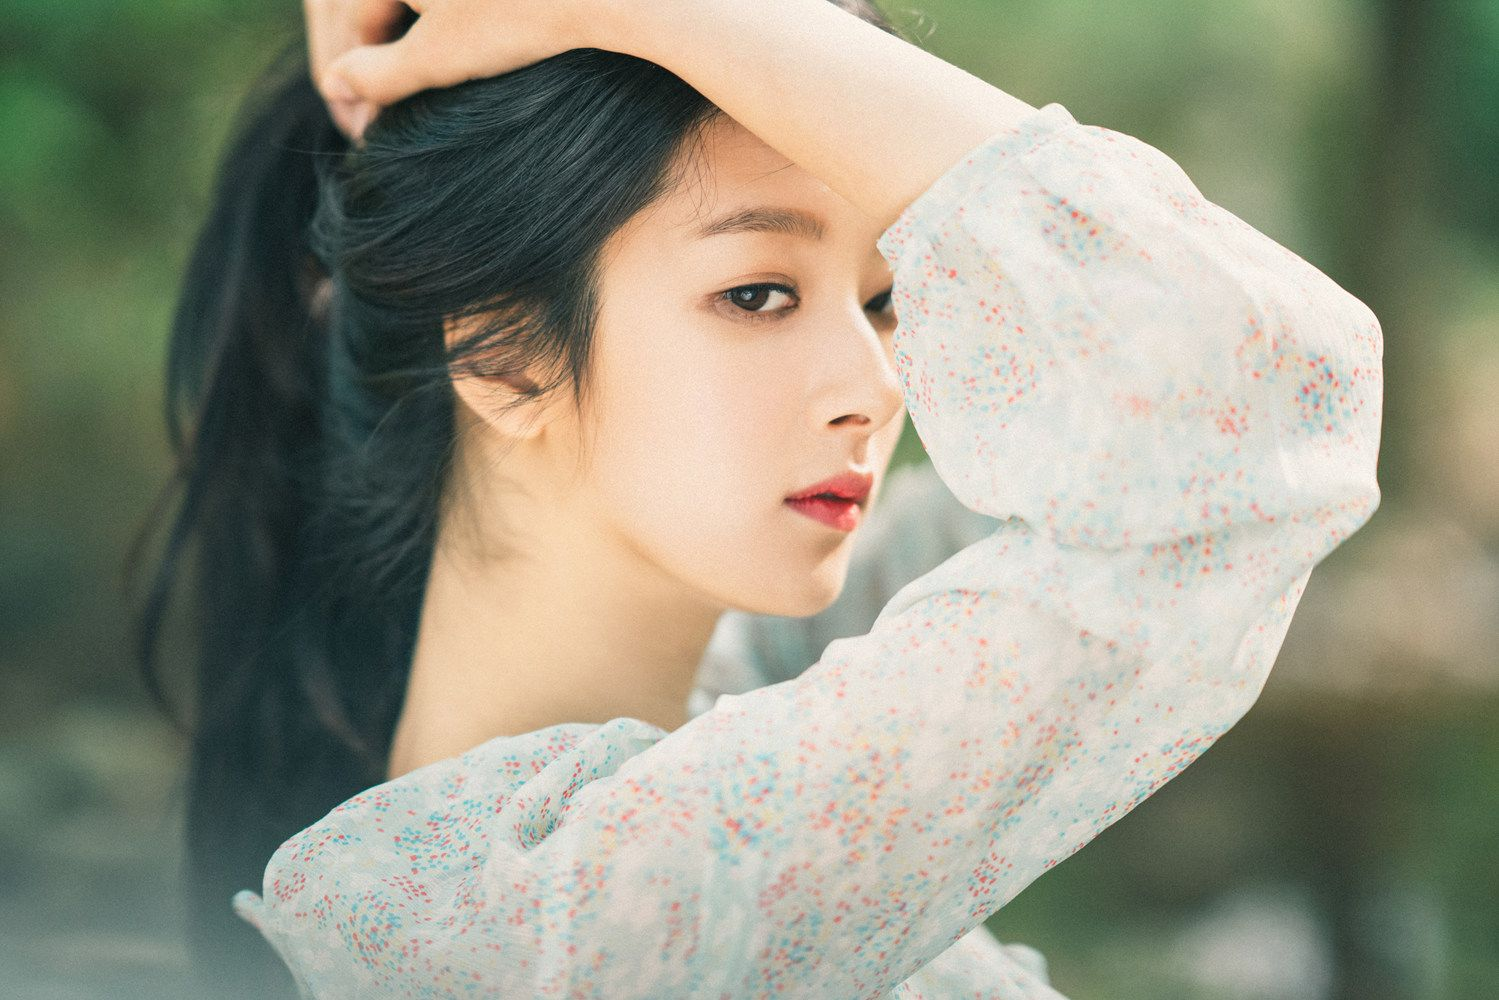 9Muses will never be the same without Park Minha